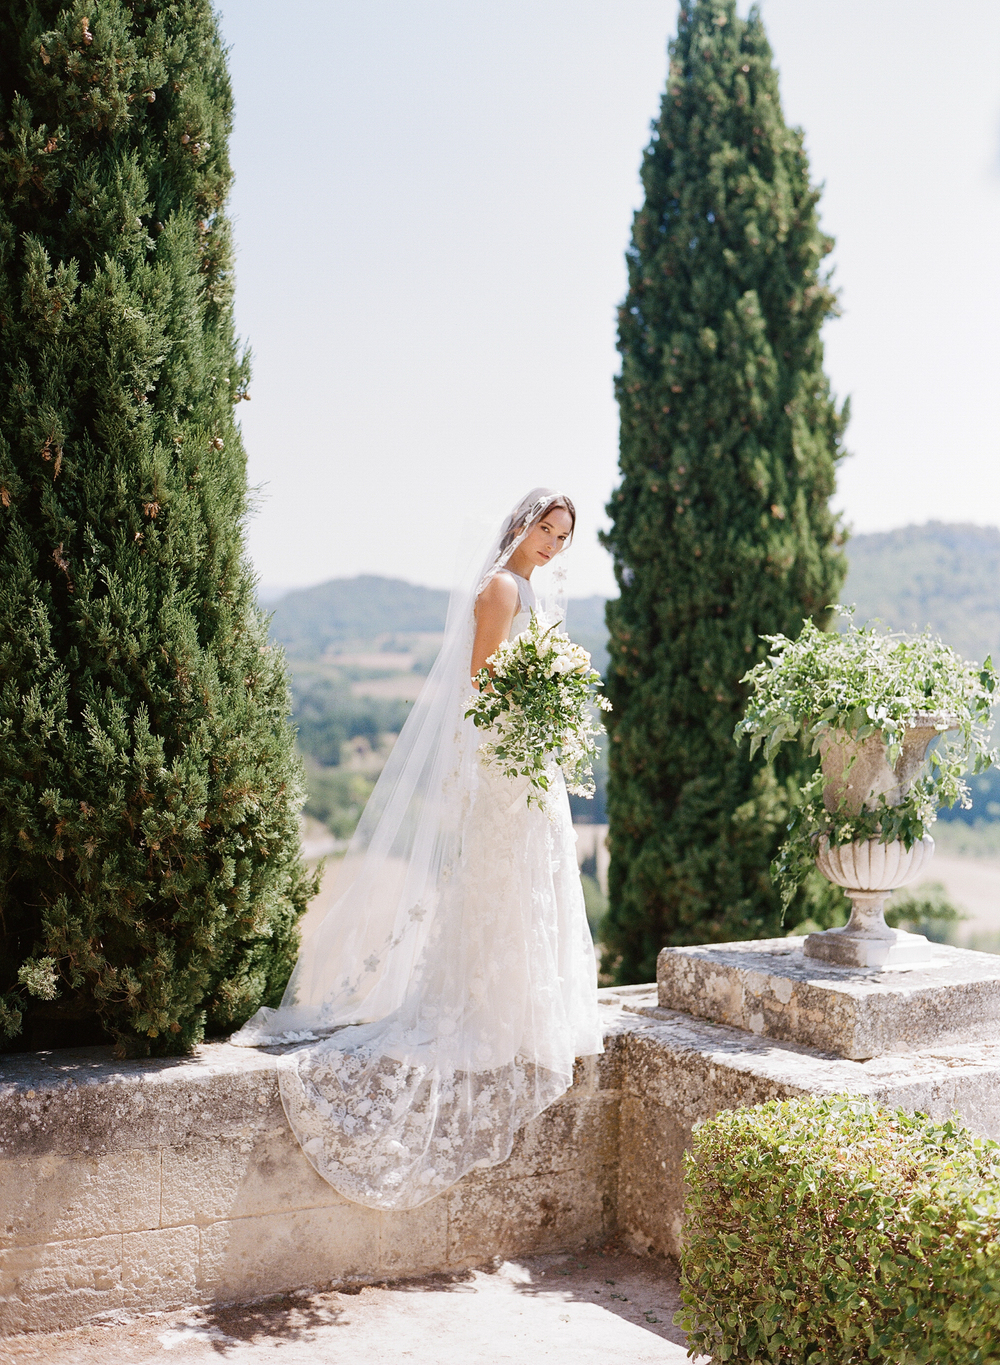 The bride stands on a terrace wall in the chateau in Provence, wearing a Claire Pettibone gown and veil; photo by Sylvie GIl